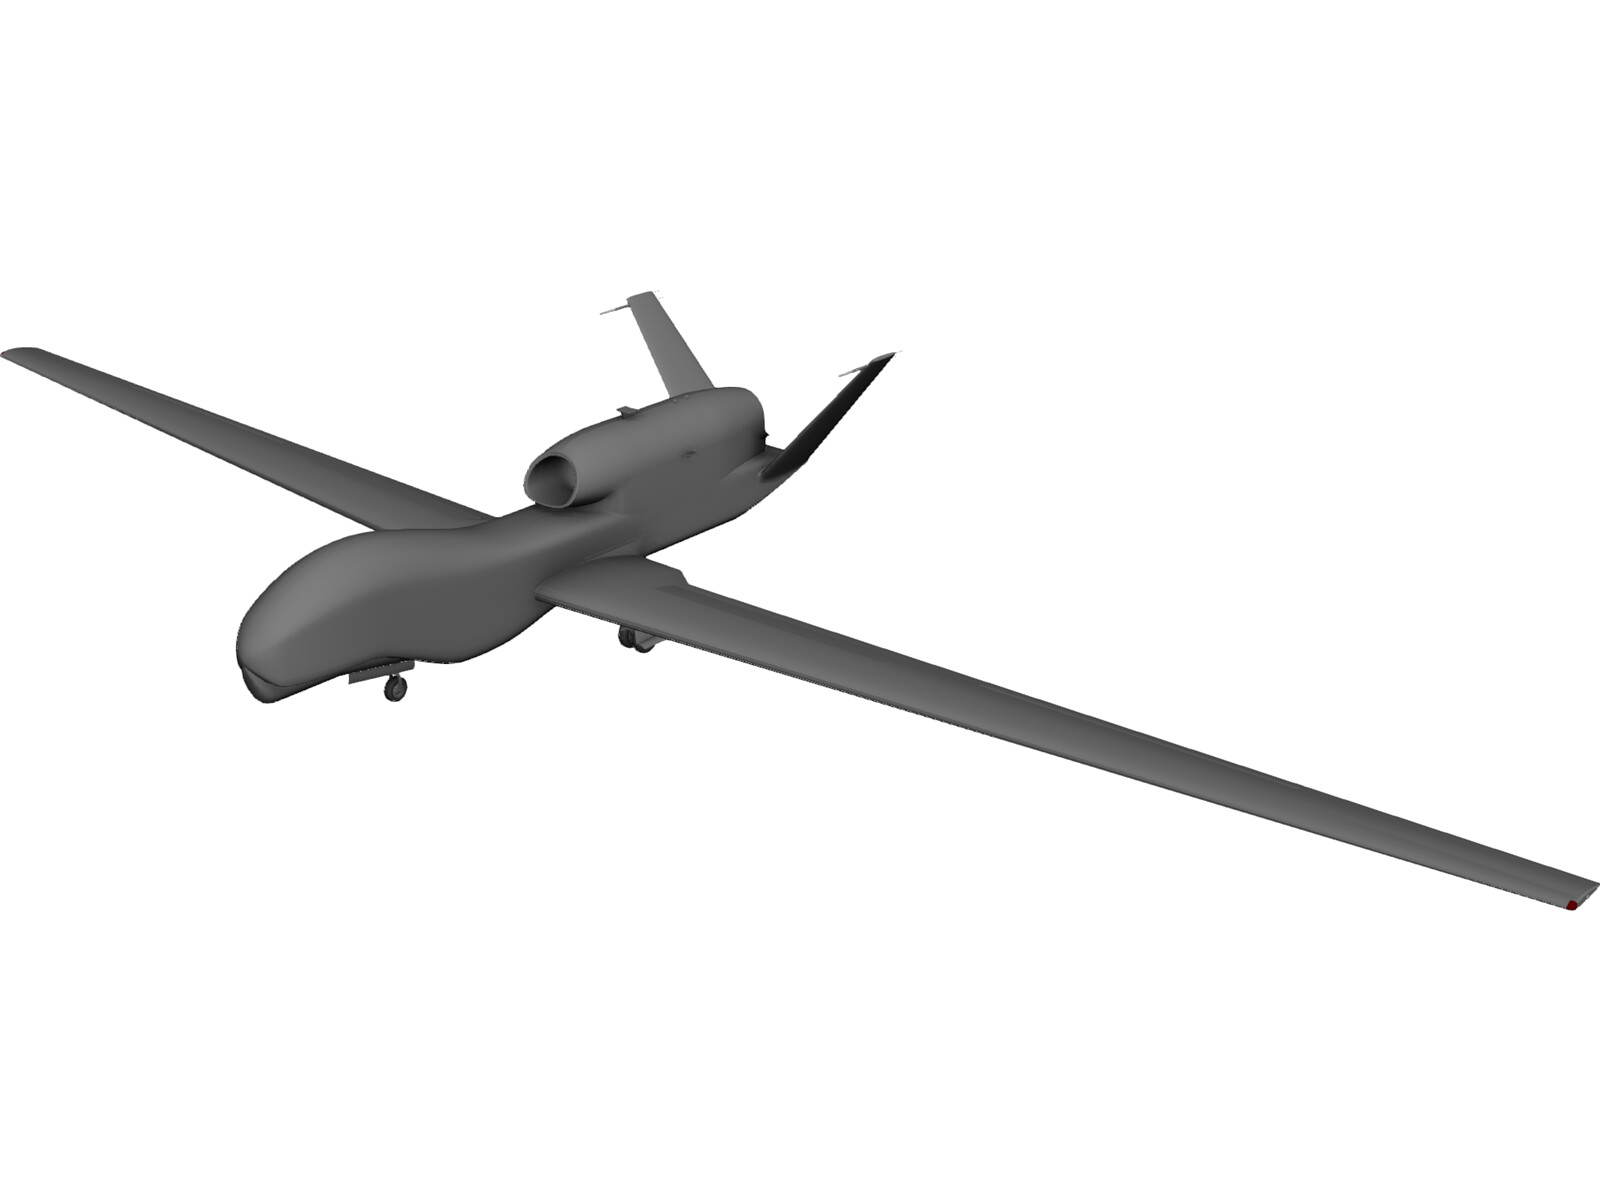 NASA Global Hawk 3D Model - Pics about space